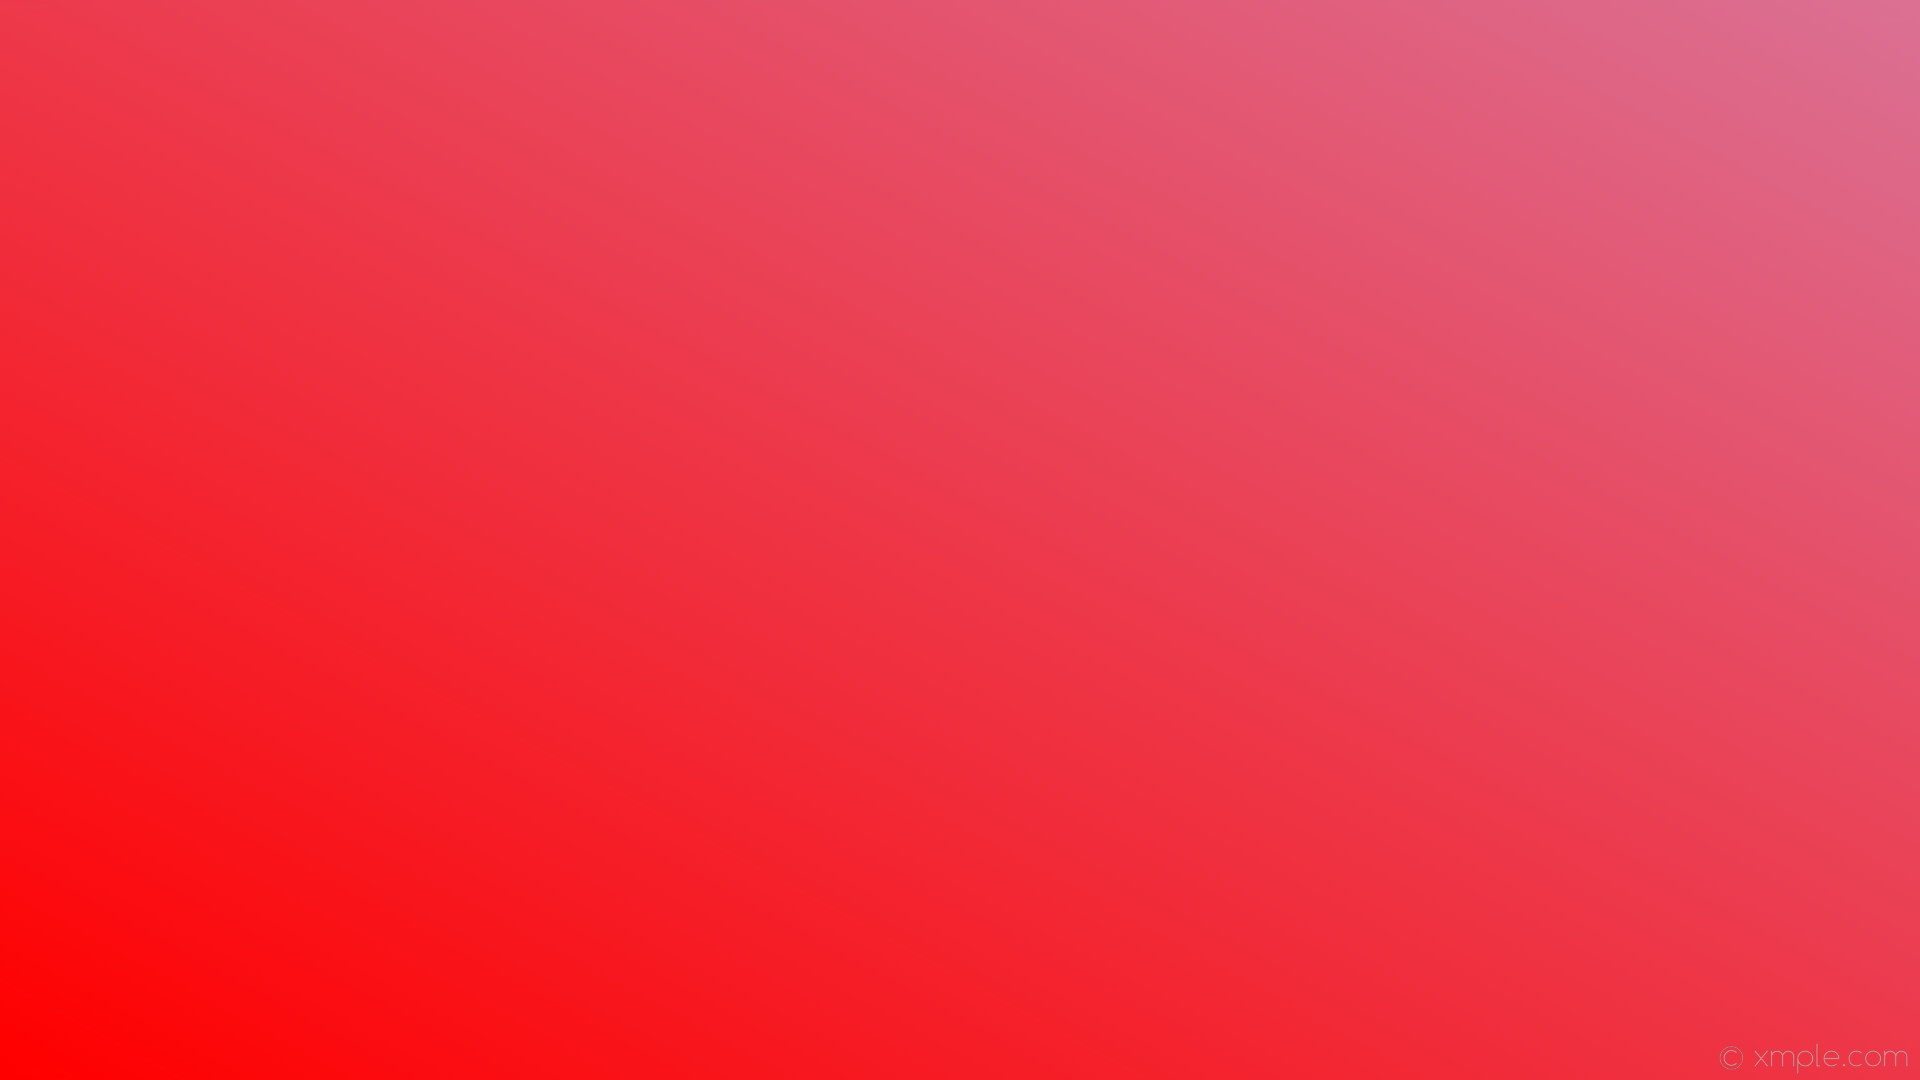 1920x1080 wallpaper pink linear red gradient pale violet red #db7093 #ff0000 30°